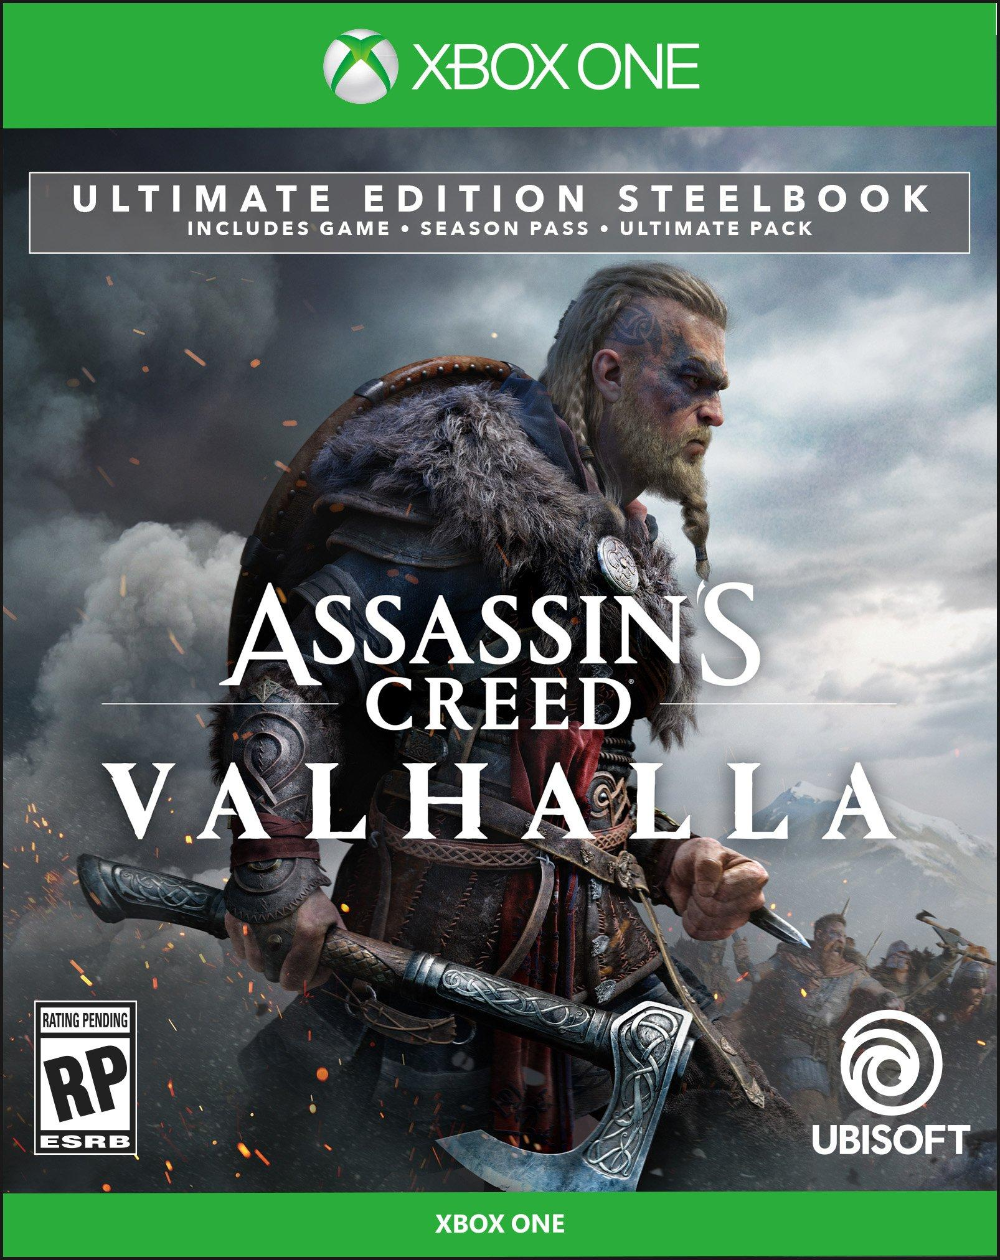 Assassin S Creed Valhalla Ultimate Edition Steelbook Only At Gamestop Xbox One Gamestop In 2020 Assassins Creed Xbox One Valhalla